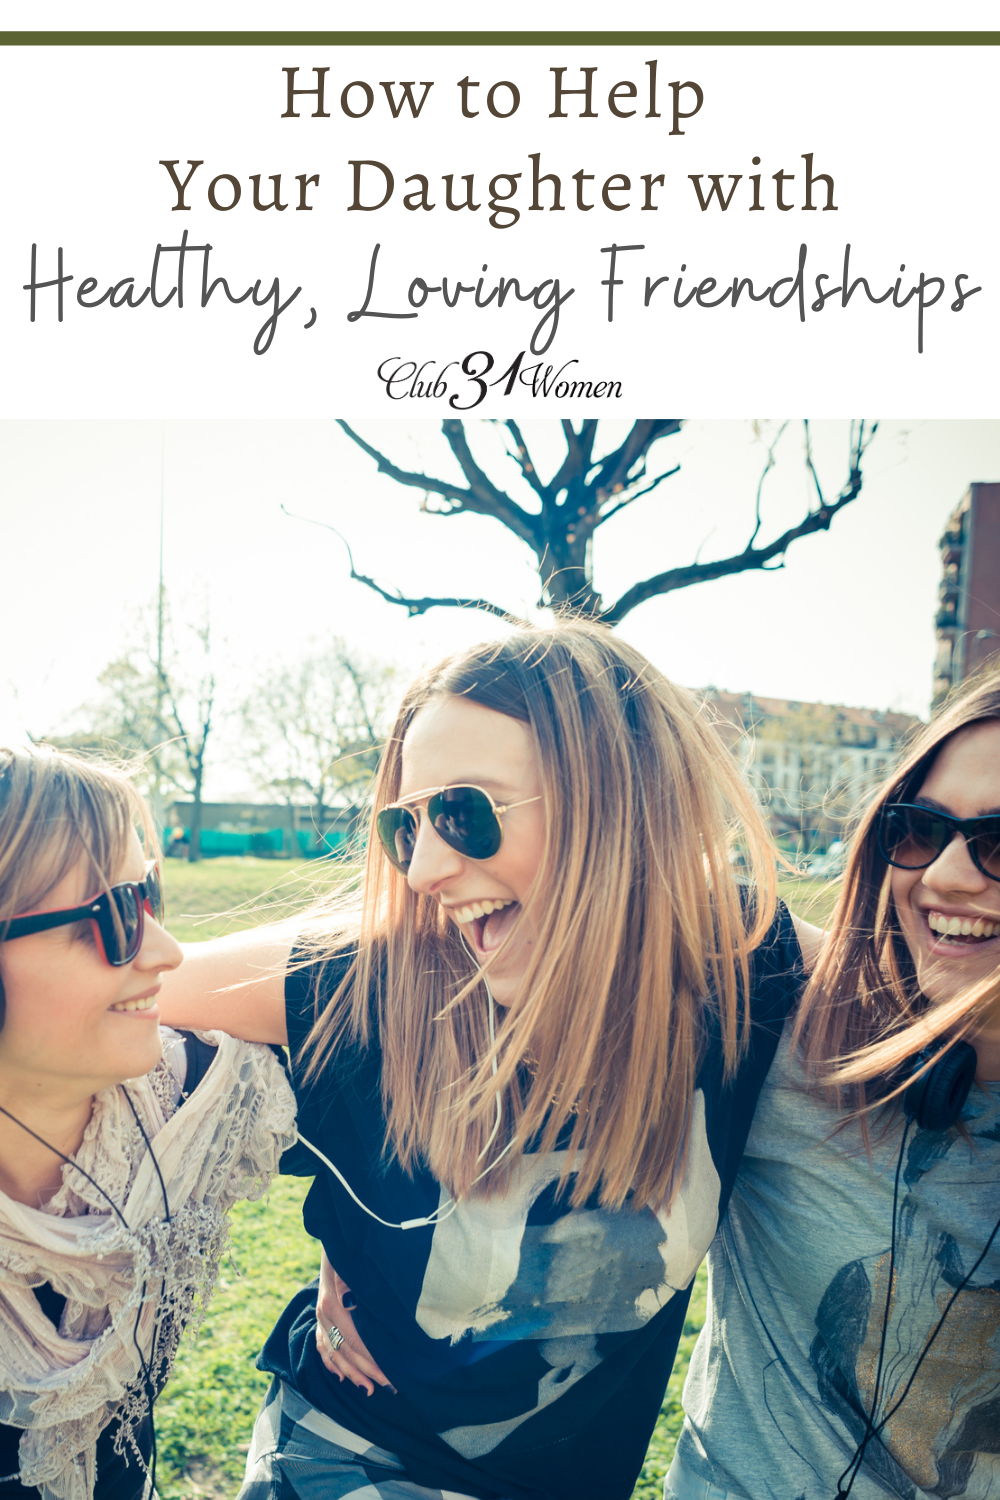 Strong friendships are such an important part of a girl's life. Here's practical and wise advice to guide your daughter in making and keeping good friends! via @Club31Women